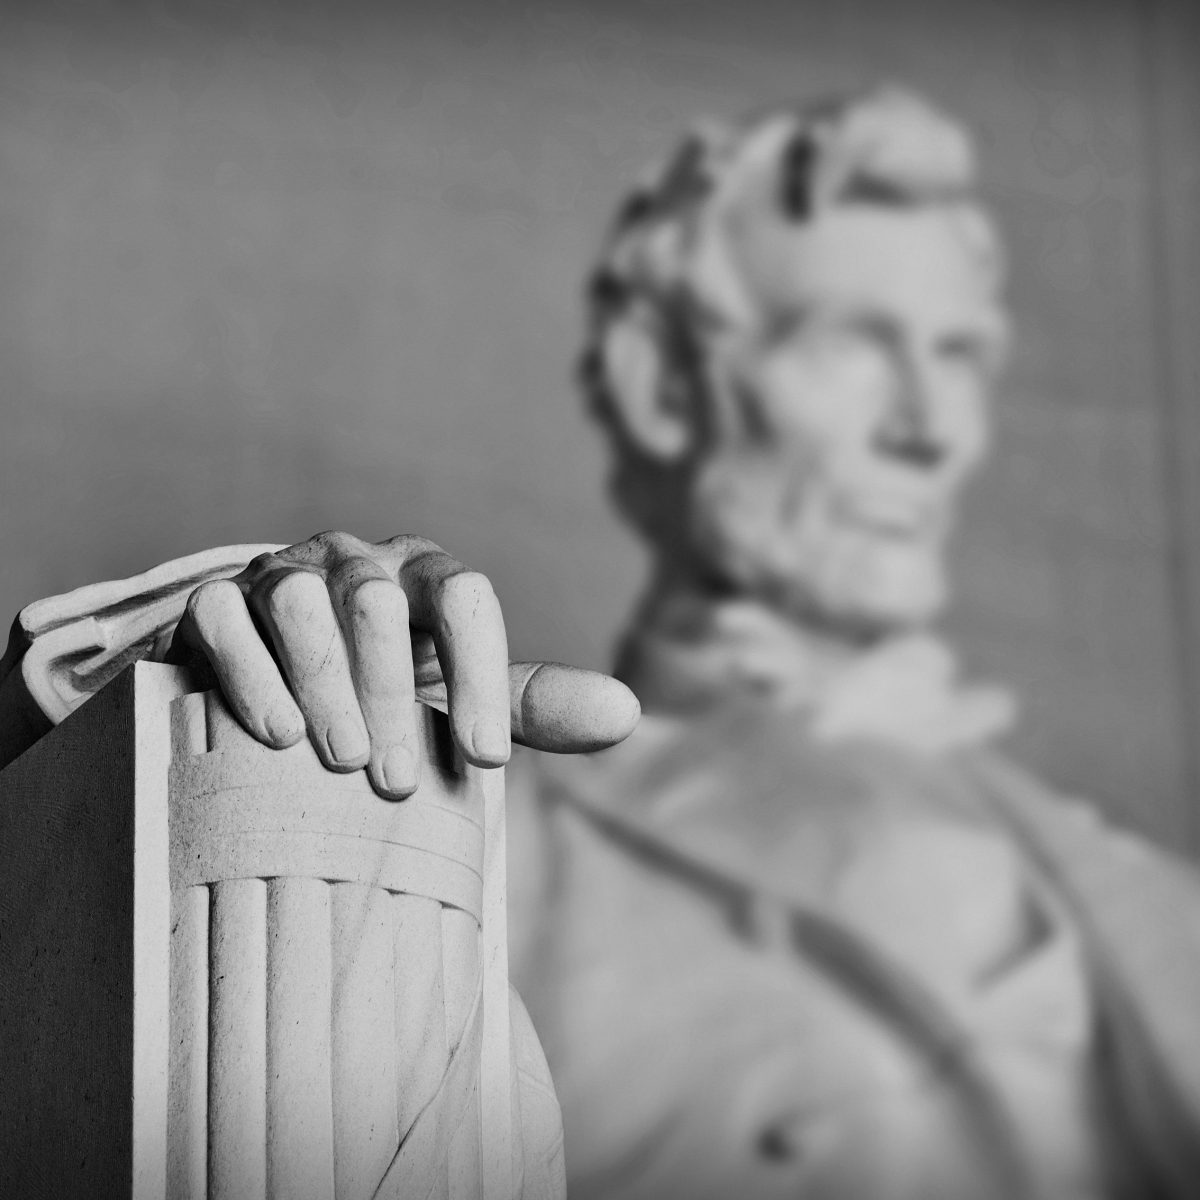 Washington DC, Lincoln Memorial, USA, Lincoln's Hand, Statue of Lincoln, Washington Statues, Black and white, best image of Lincoln Memorial